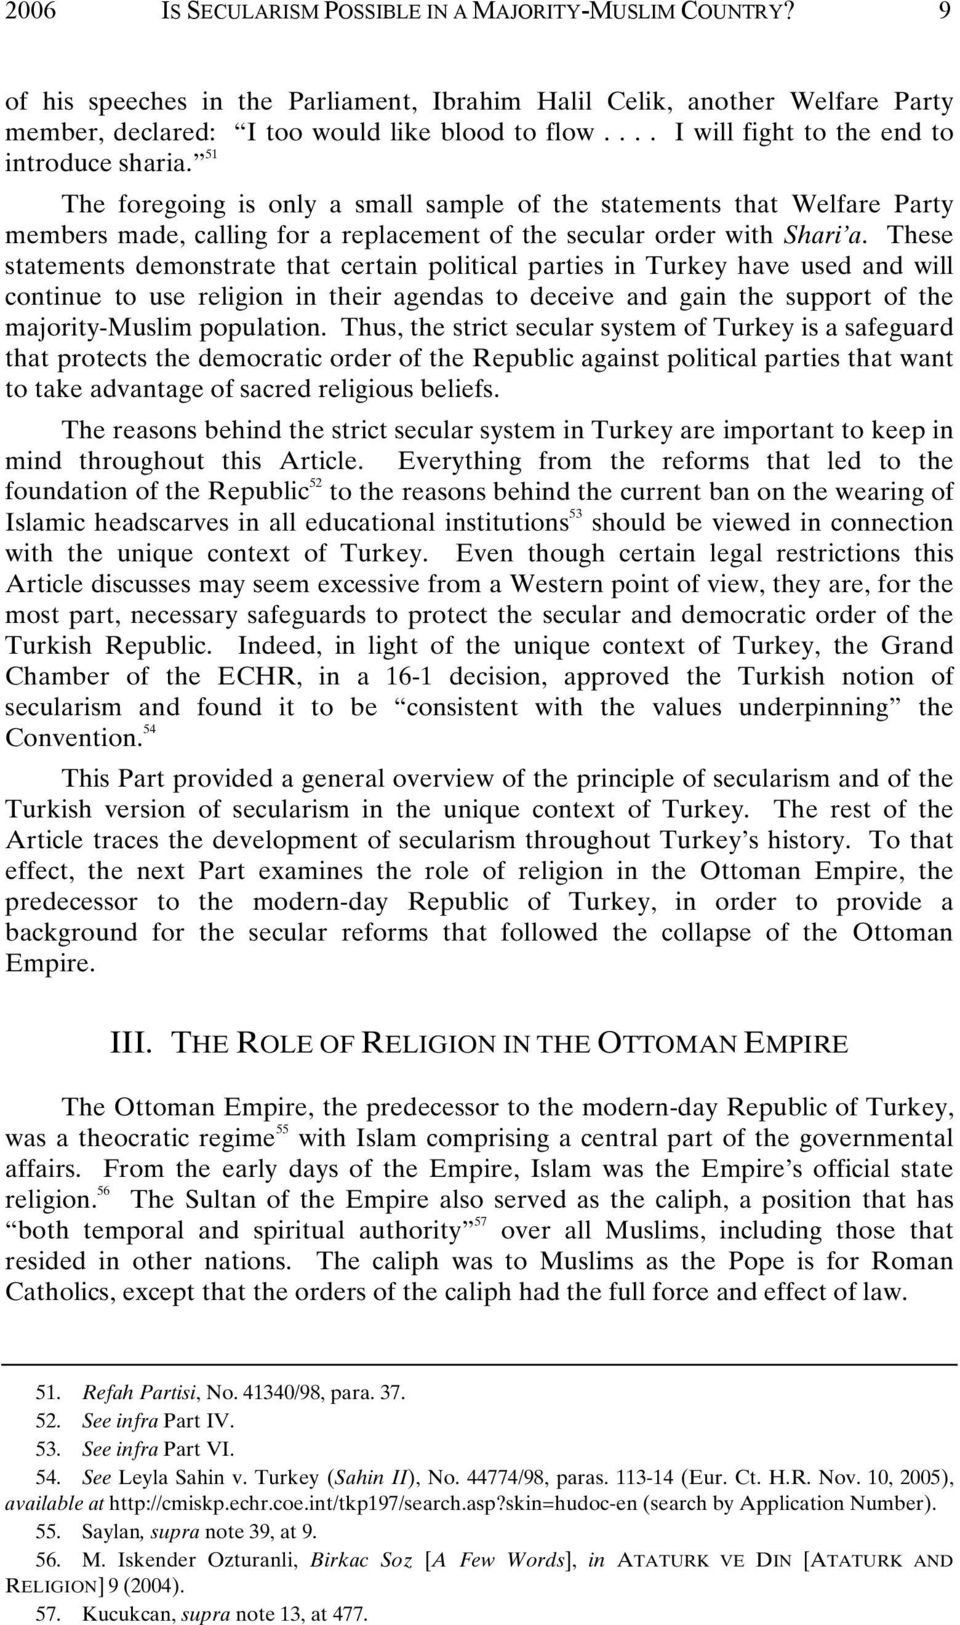 These statements demonstrate that certain political parties in Turkey have used and will continue to use religion in their agendas to deceive and gain the support of the majority-muslim population.